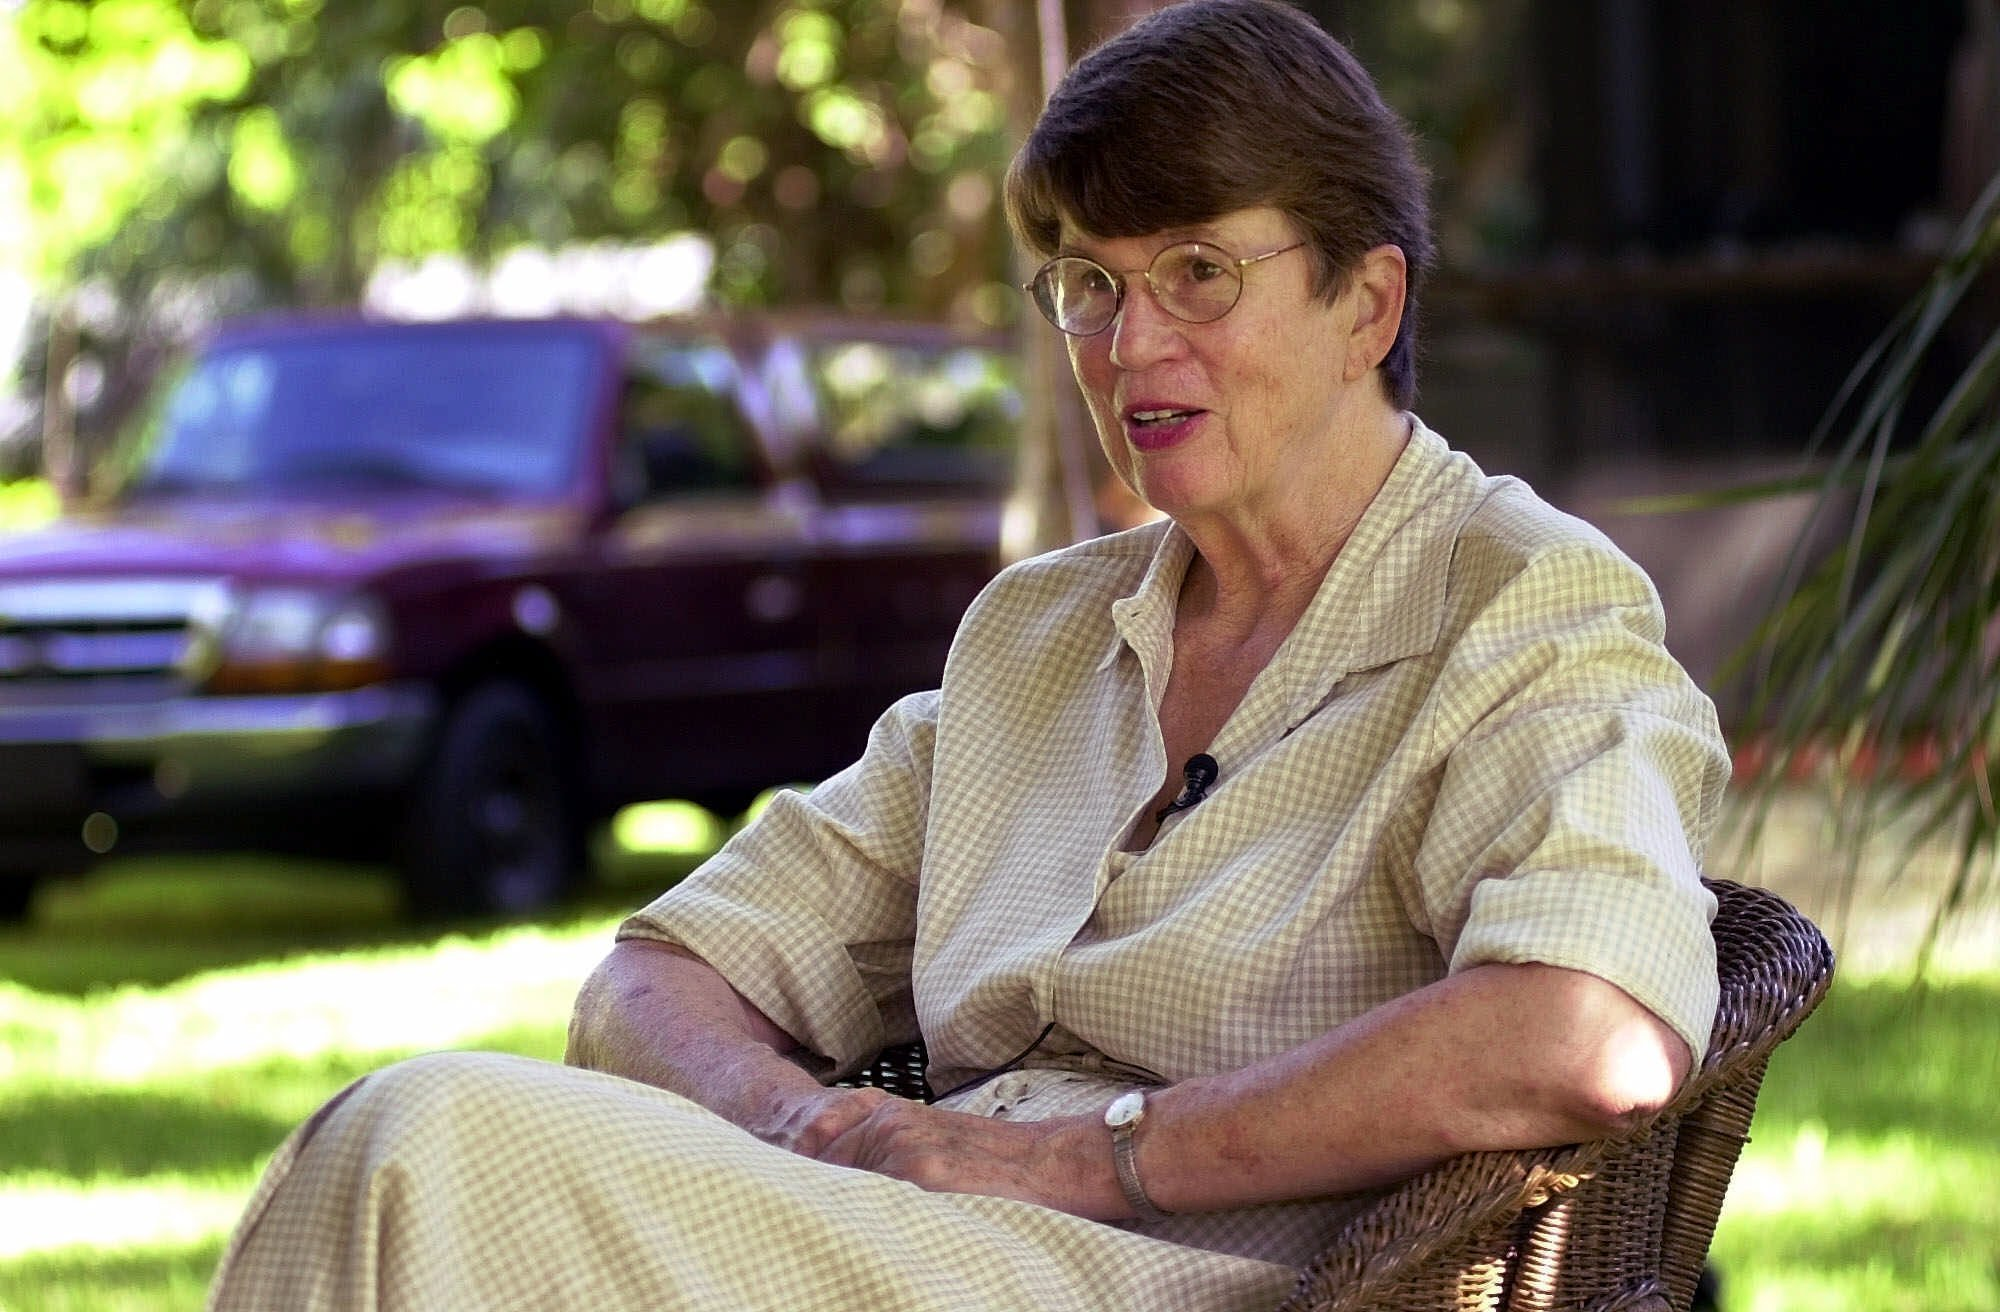 Sept. 4, 2001, file photo: Former U.S. Attorney General Janet Reno speaks with members of the media from the backyard of her home, in Miami, after announcing that she would be running for Governor of Florida. (AP Photo/Tony Gutierrez, File)